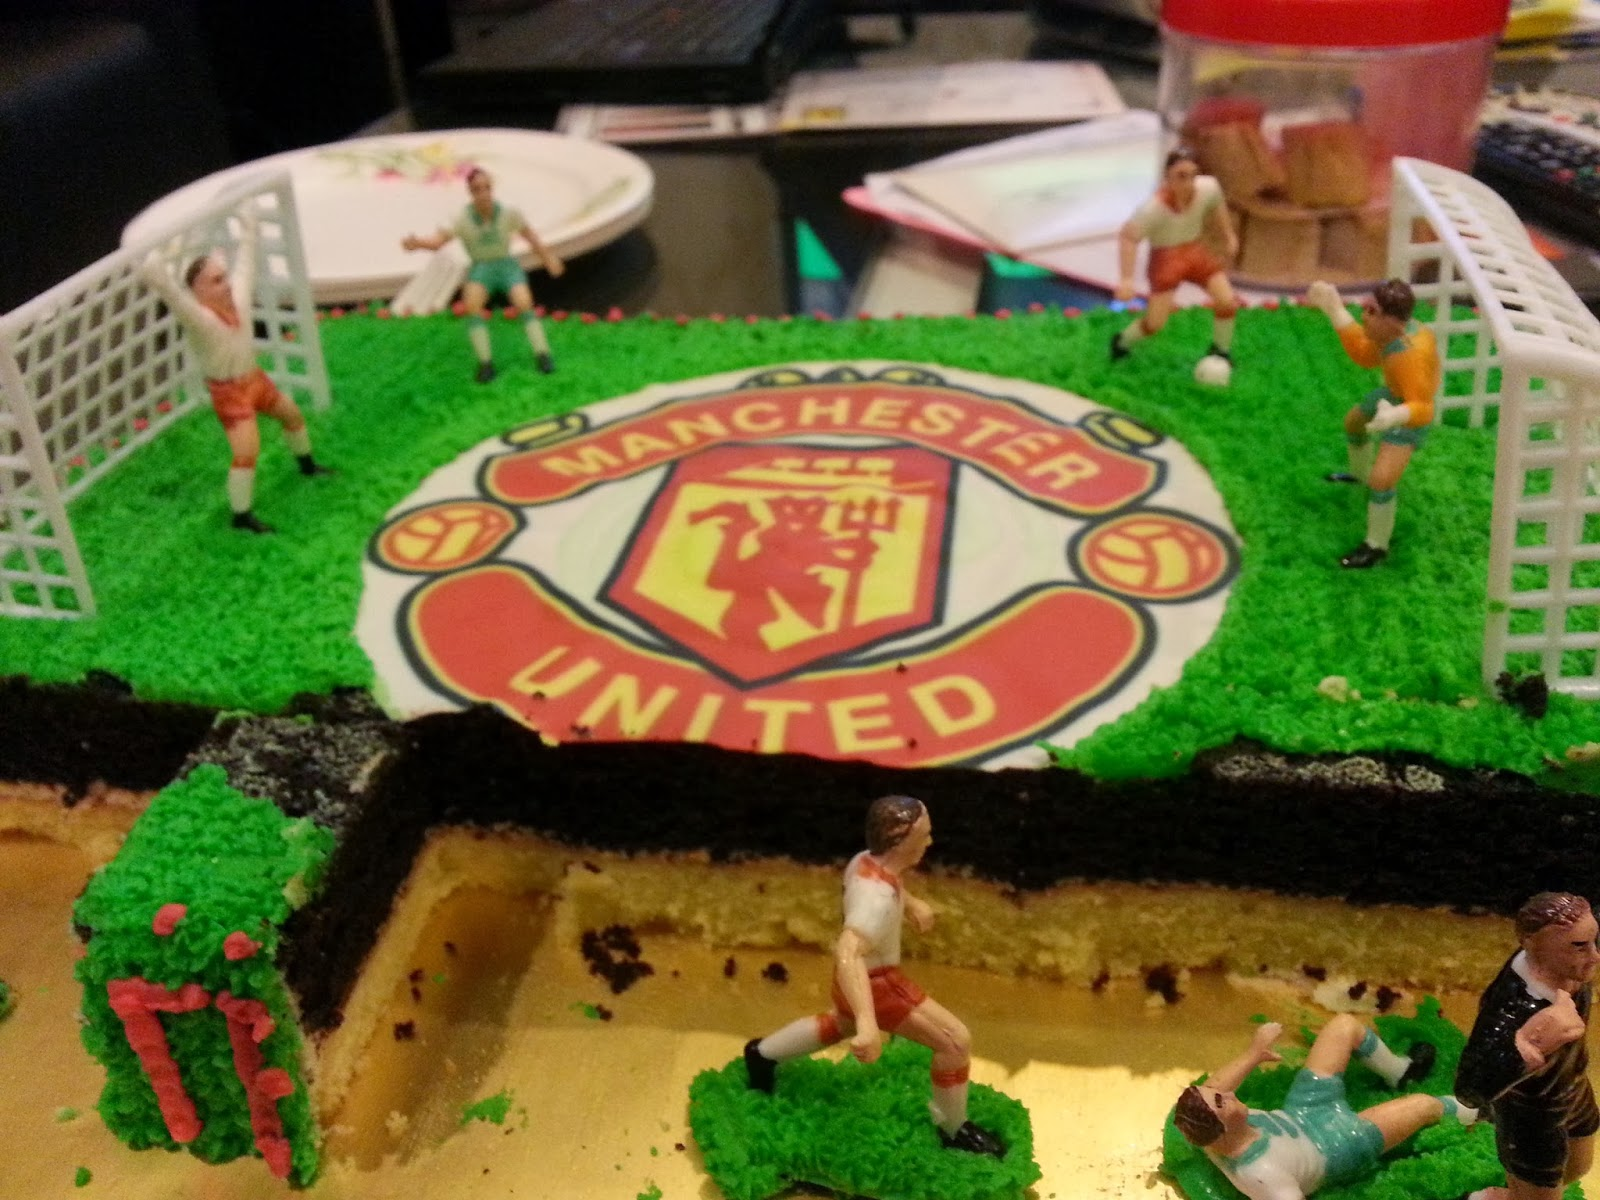 Edible Cake Images Football : Cakes By Mercy: Manchester United football cake (edible ...